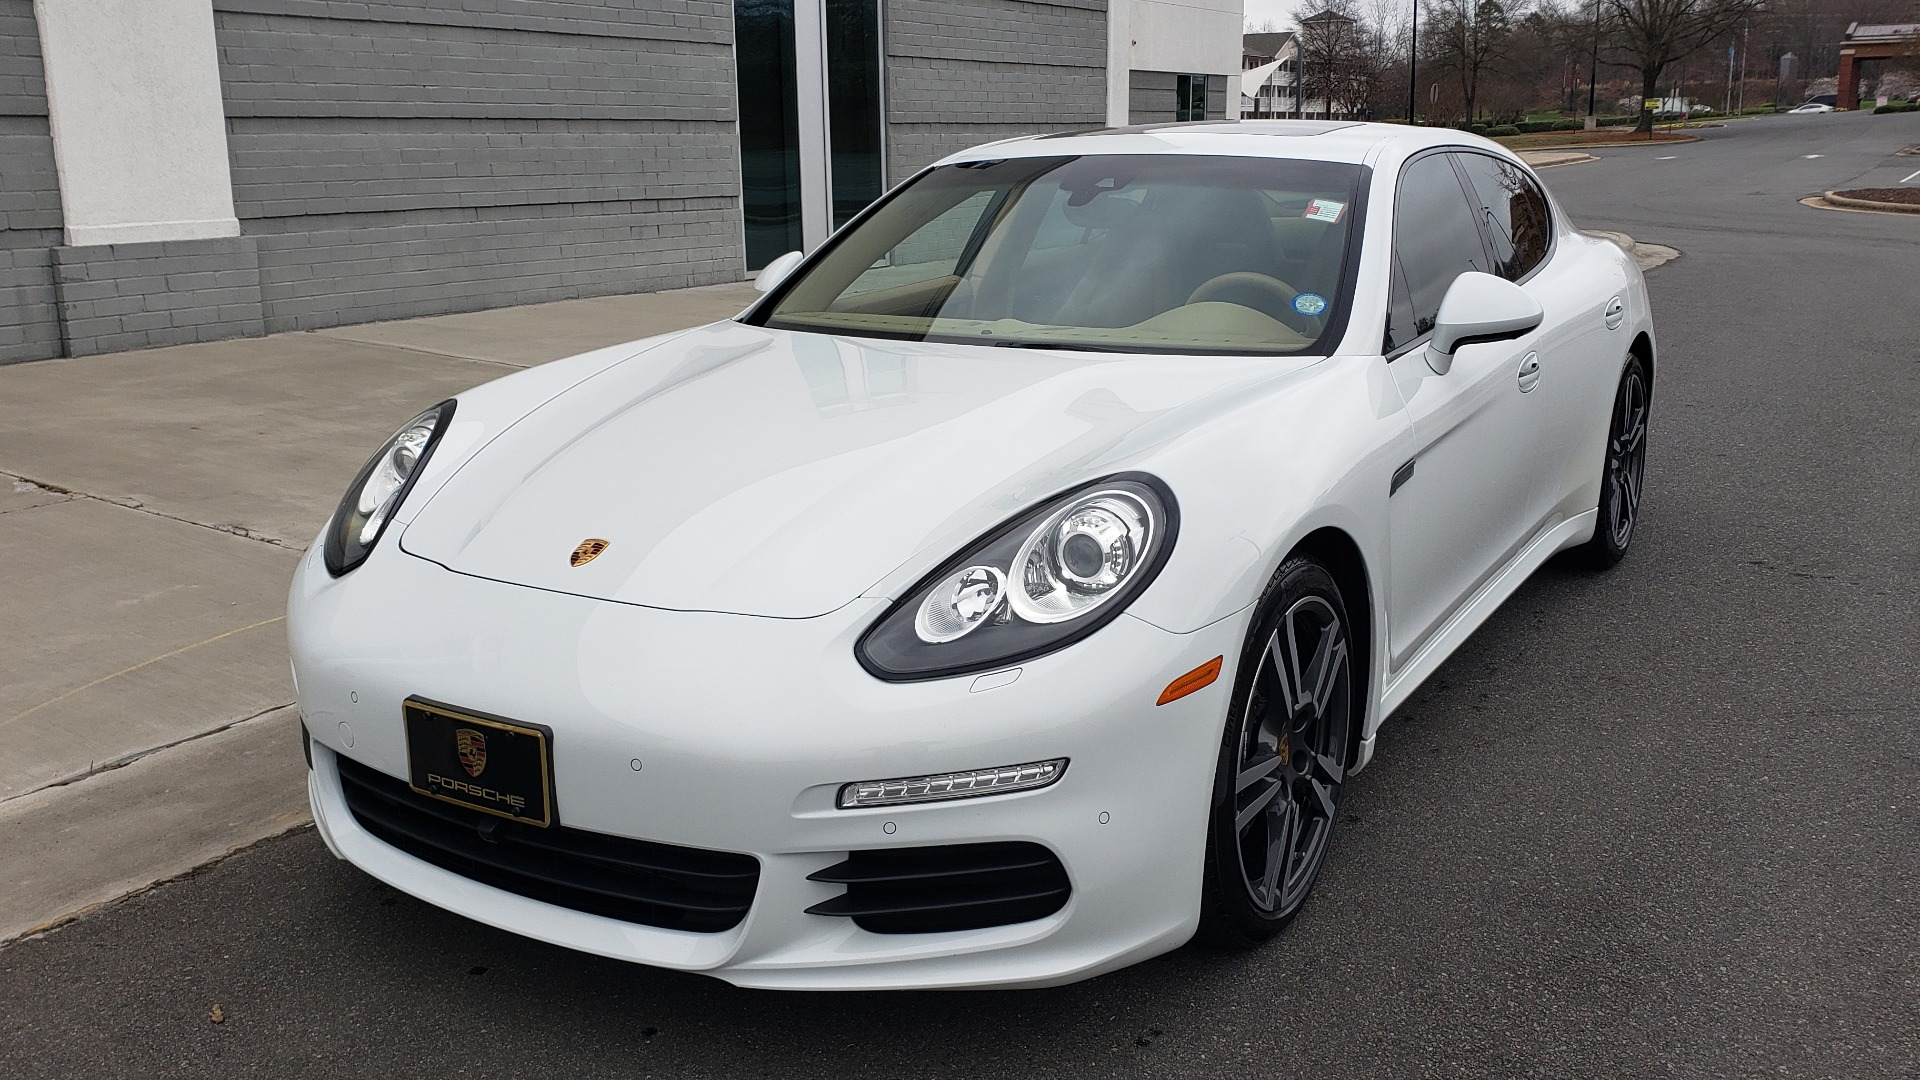 Used 2016 Porsche PANAMERA EDITION / 3.6L V6 / PDK TANS / PREMIUM PKG / LDW / PARK ASSIST for sale Sold at Formula Imports in Charlotte NC 28227 5